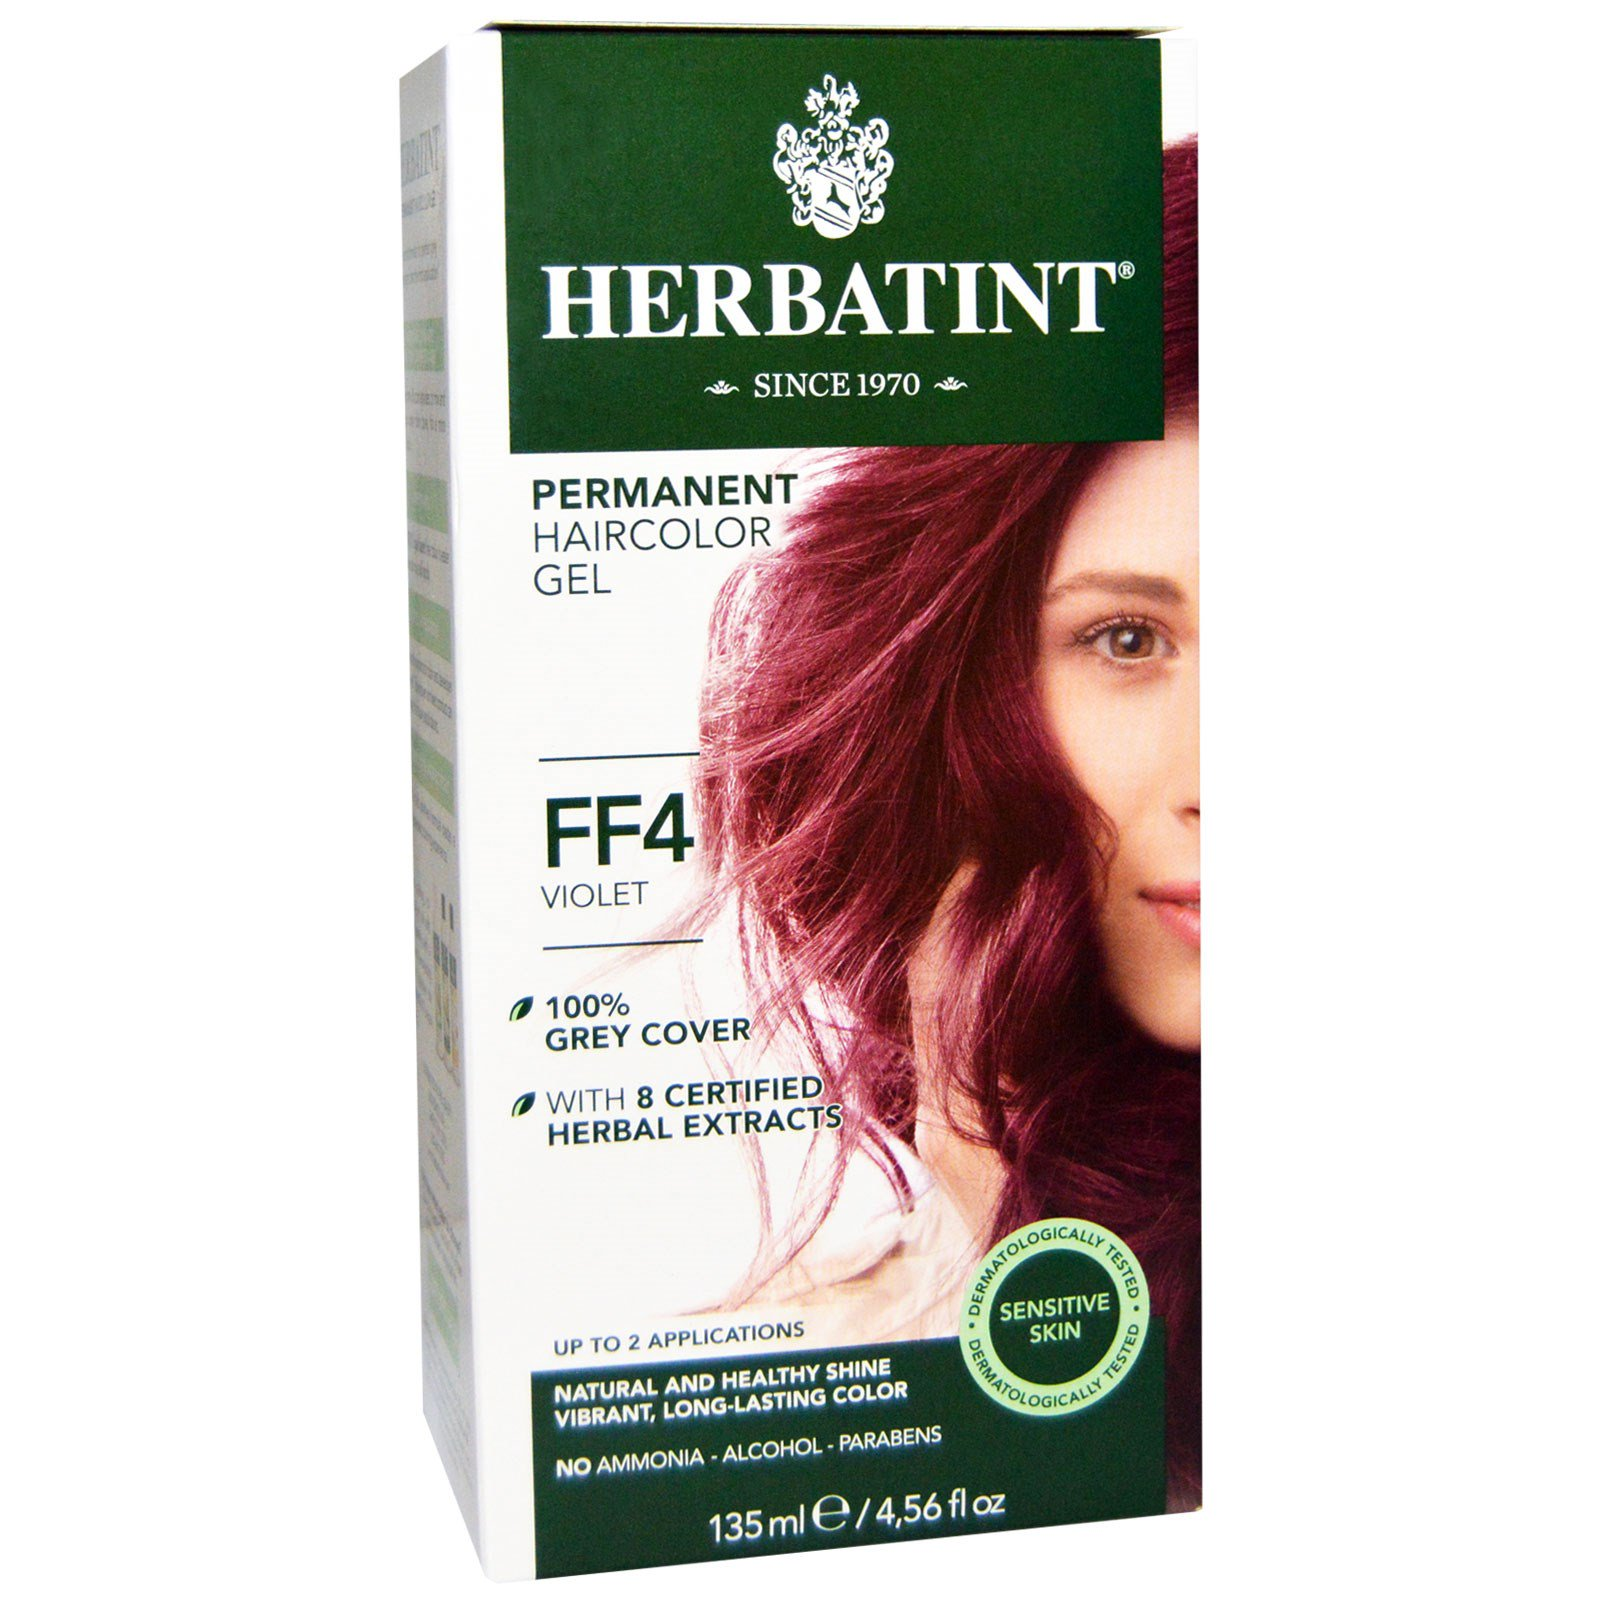 Herbatint Permanent Haircolor Gel Ff 4 Violet 456 Fl Oz 135 Ml